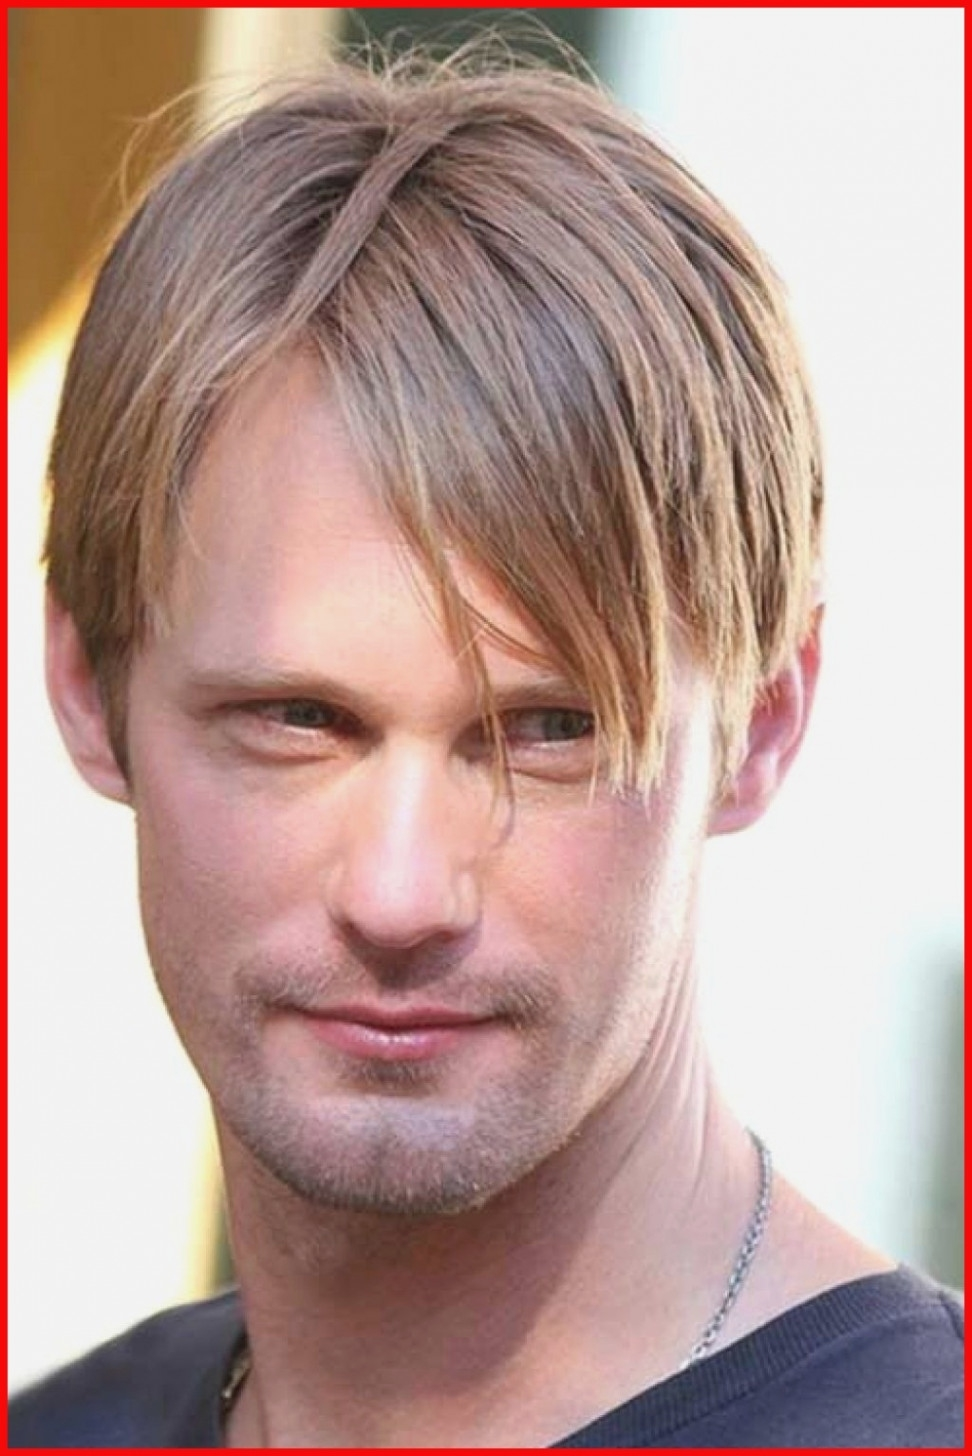 Hairstyles For Men With Thin Straight Hair Will Be A Thing inside Haircut For Thin Straight Hair Male